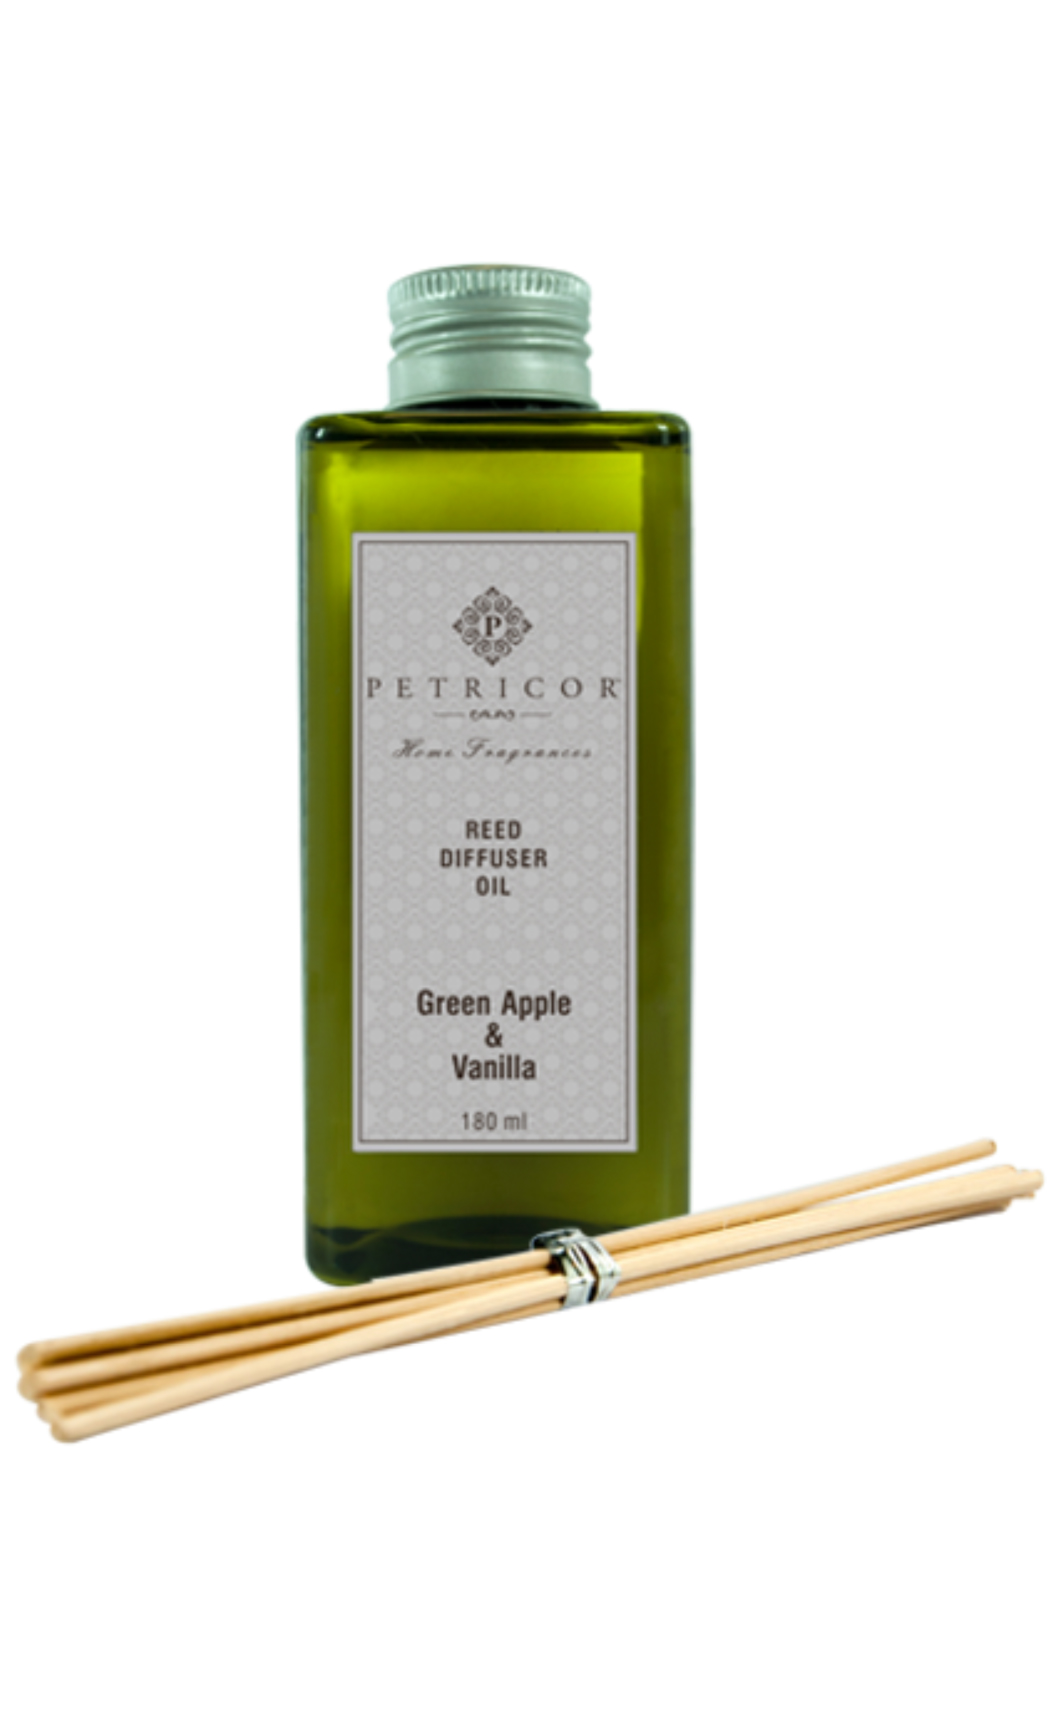 Green Apple & Vanilla Scented Reed Diffuser - Buy Aromatic Reed Diffusers Online